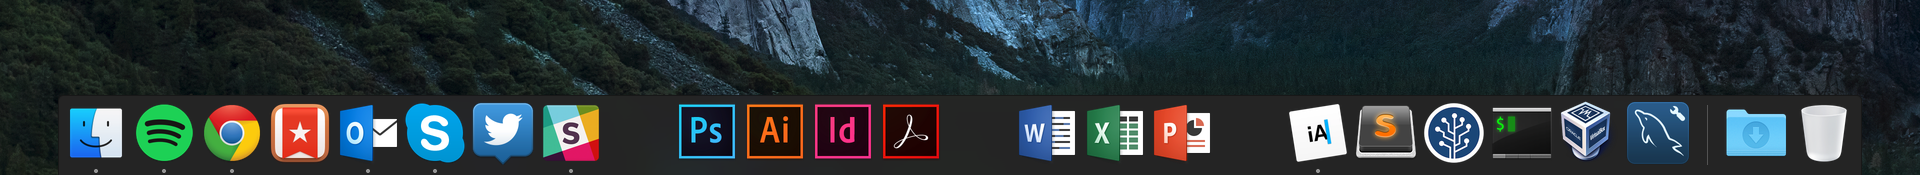 My Dock on OS X 10.11